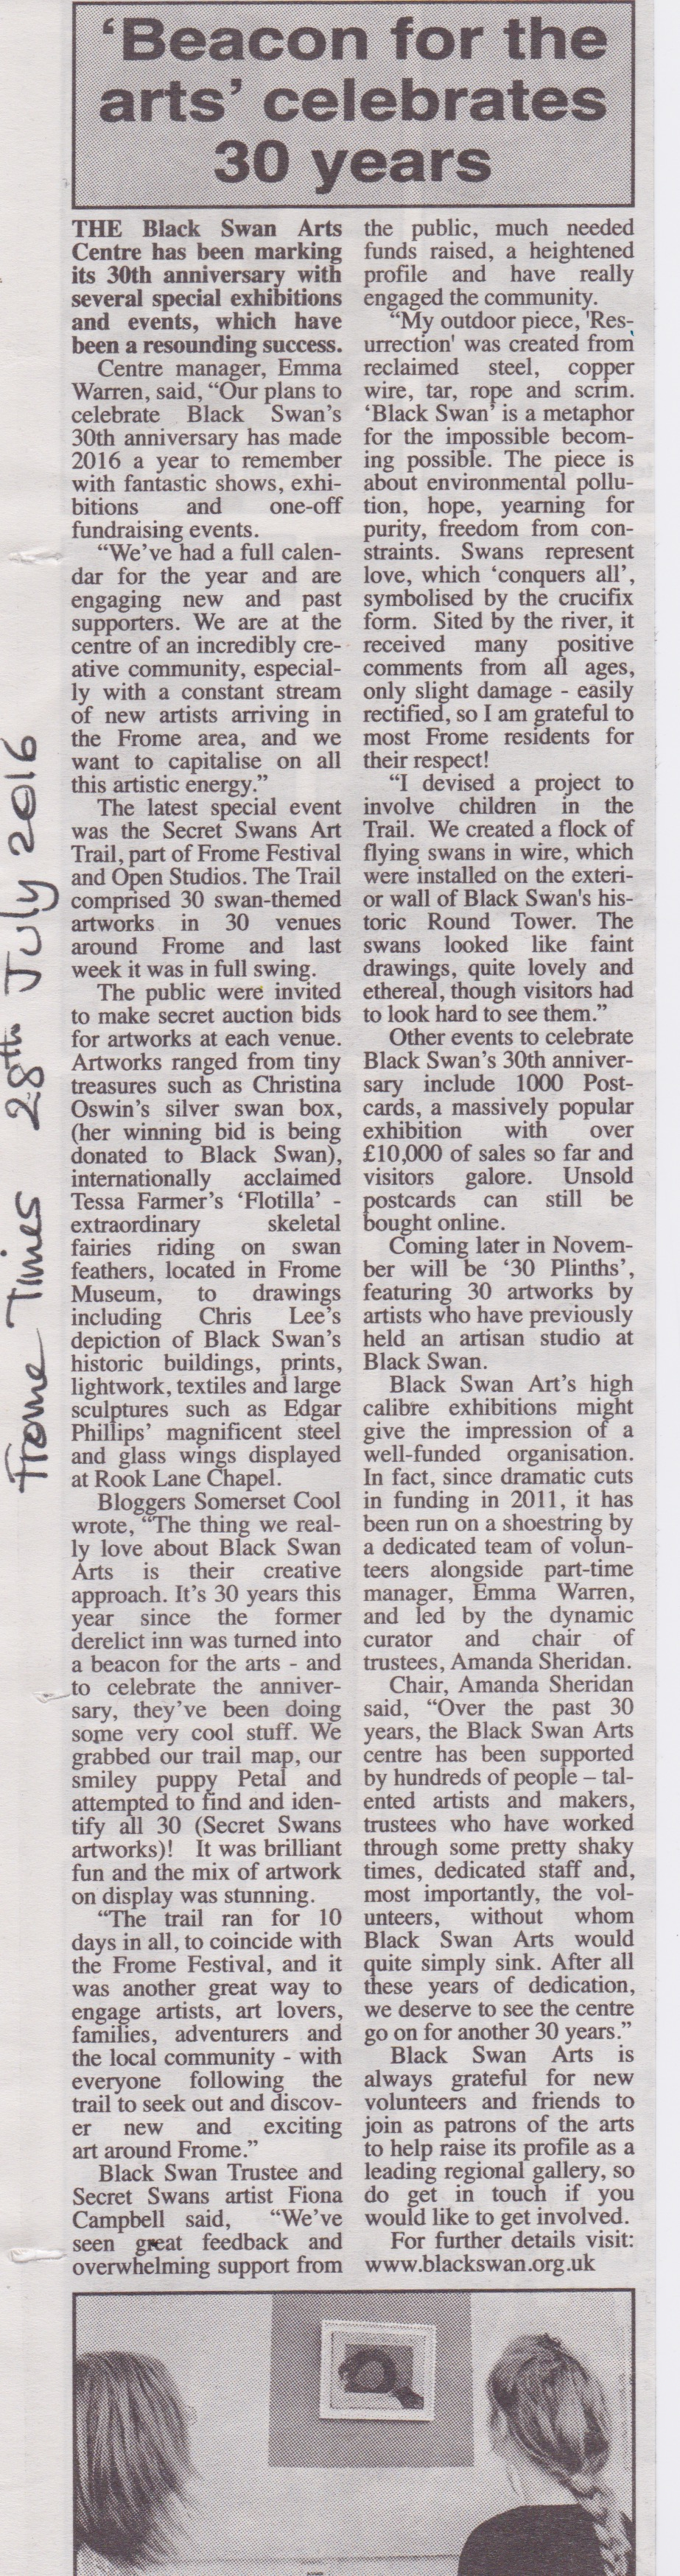 Black Swan - Beacon for the Arts - Frome Times 28:8:16